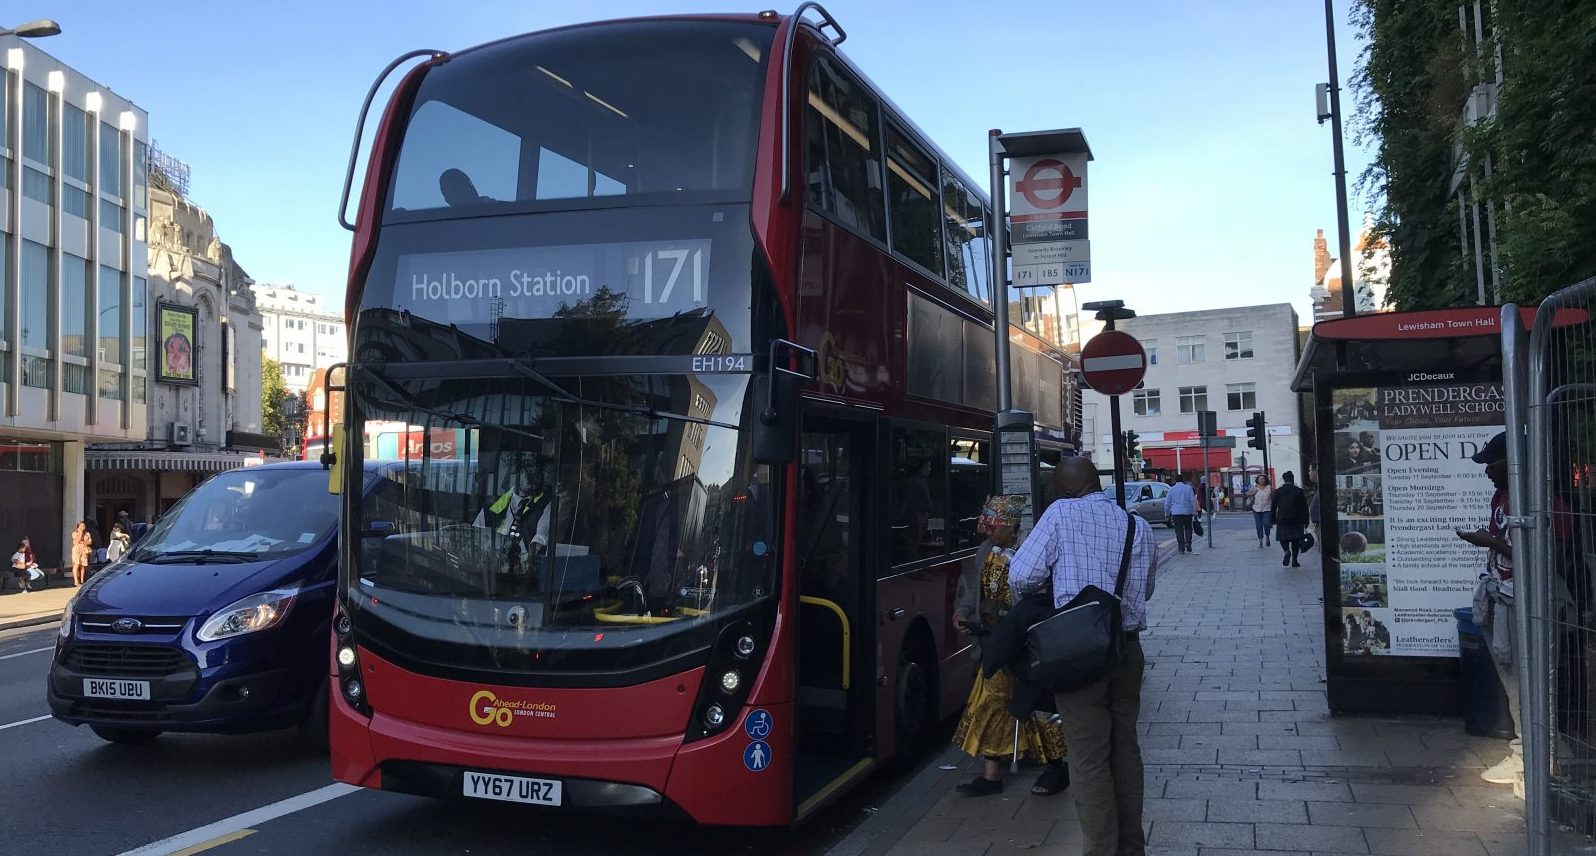 TfL bus cuts: New figures reveal SE London routes set for cuts are getting busier